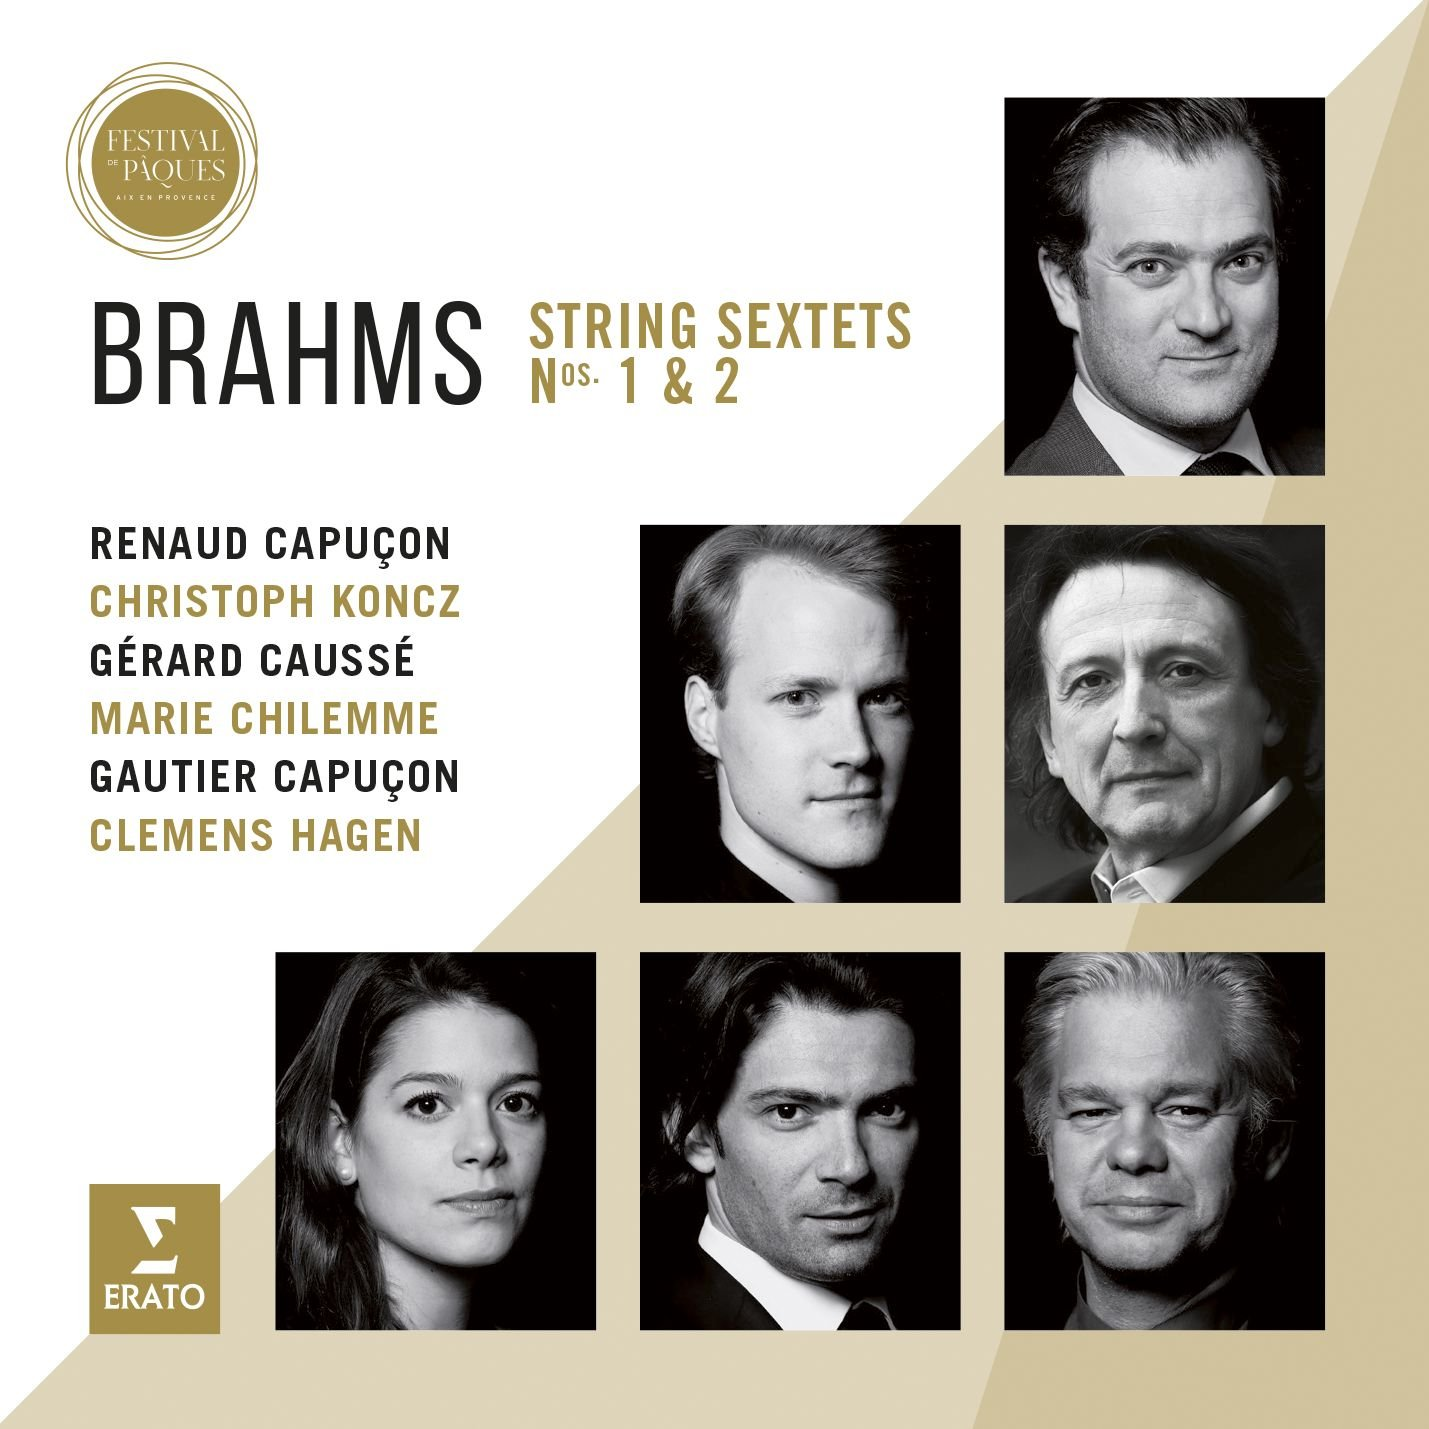 Brahms: String Sextets Nos. 1 & 2 - Live from Aix Easter Festival 2016 by Erato